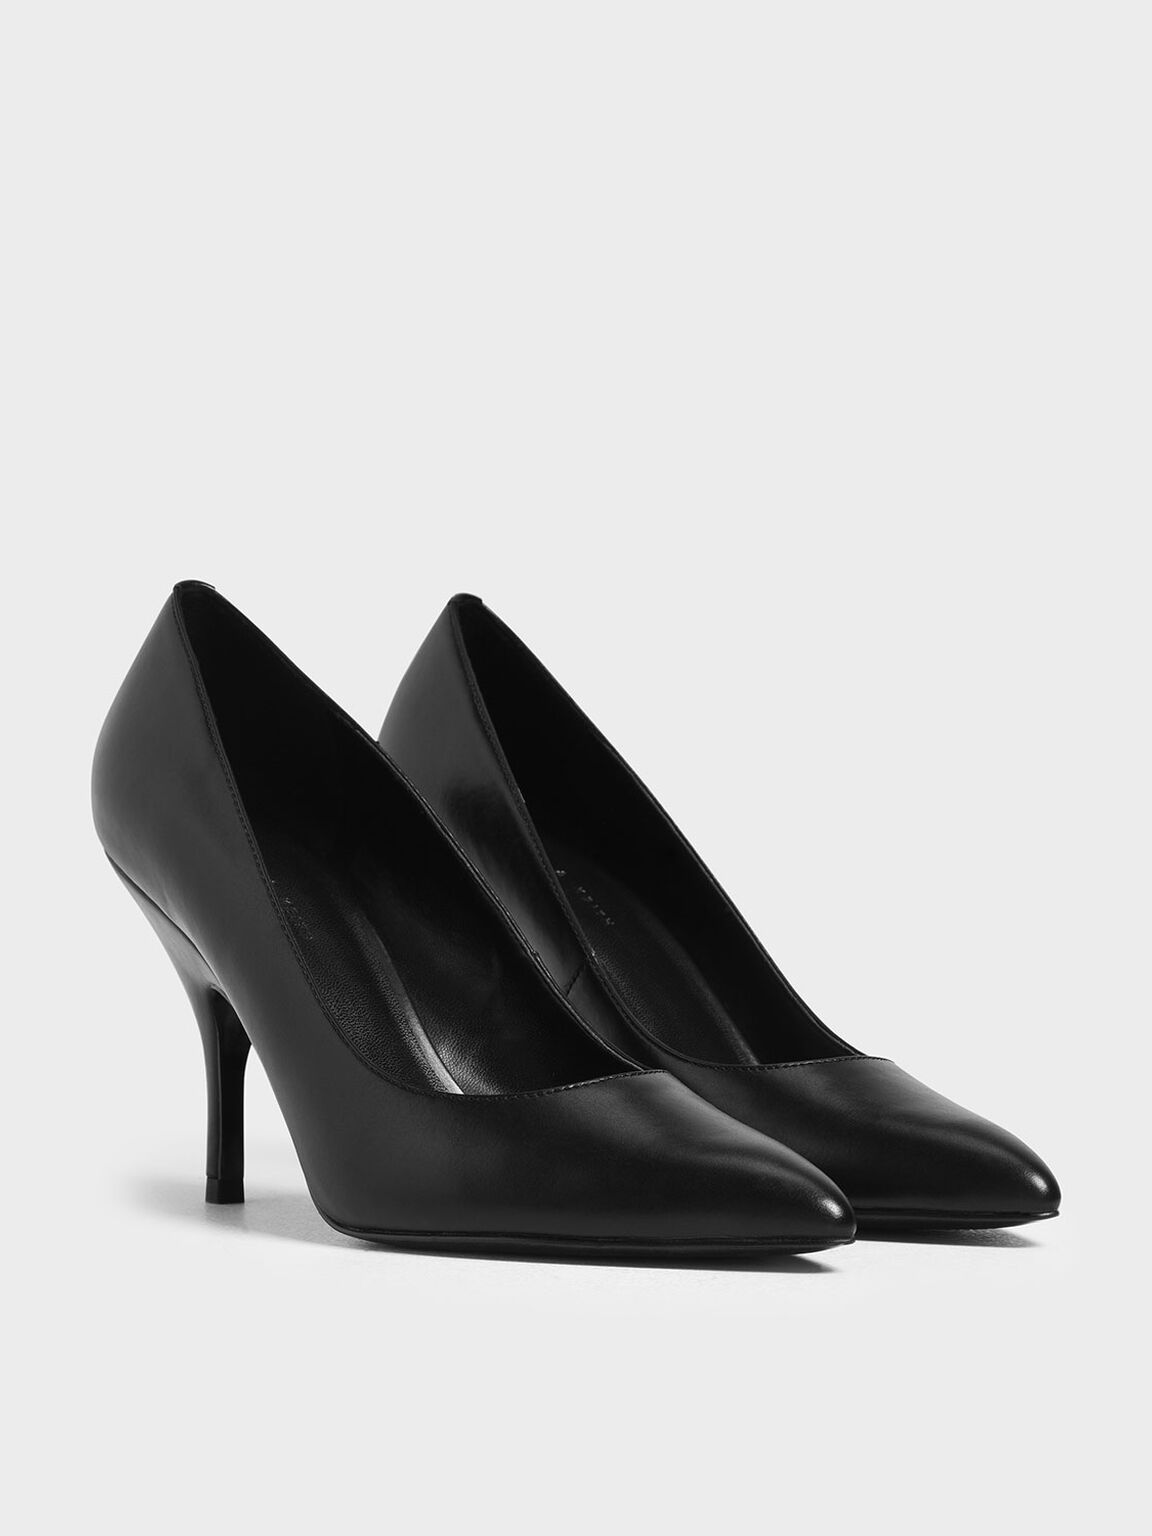 Classic Covered Pumps, Black, hi-res